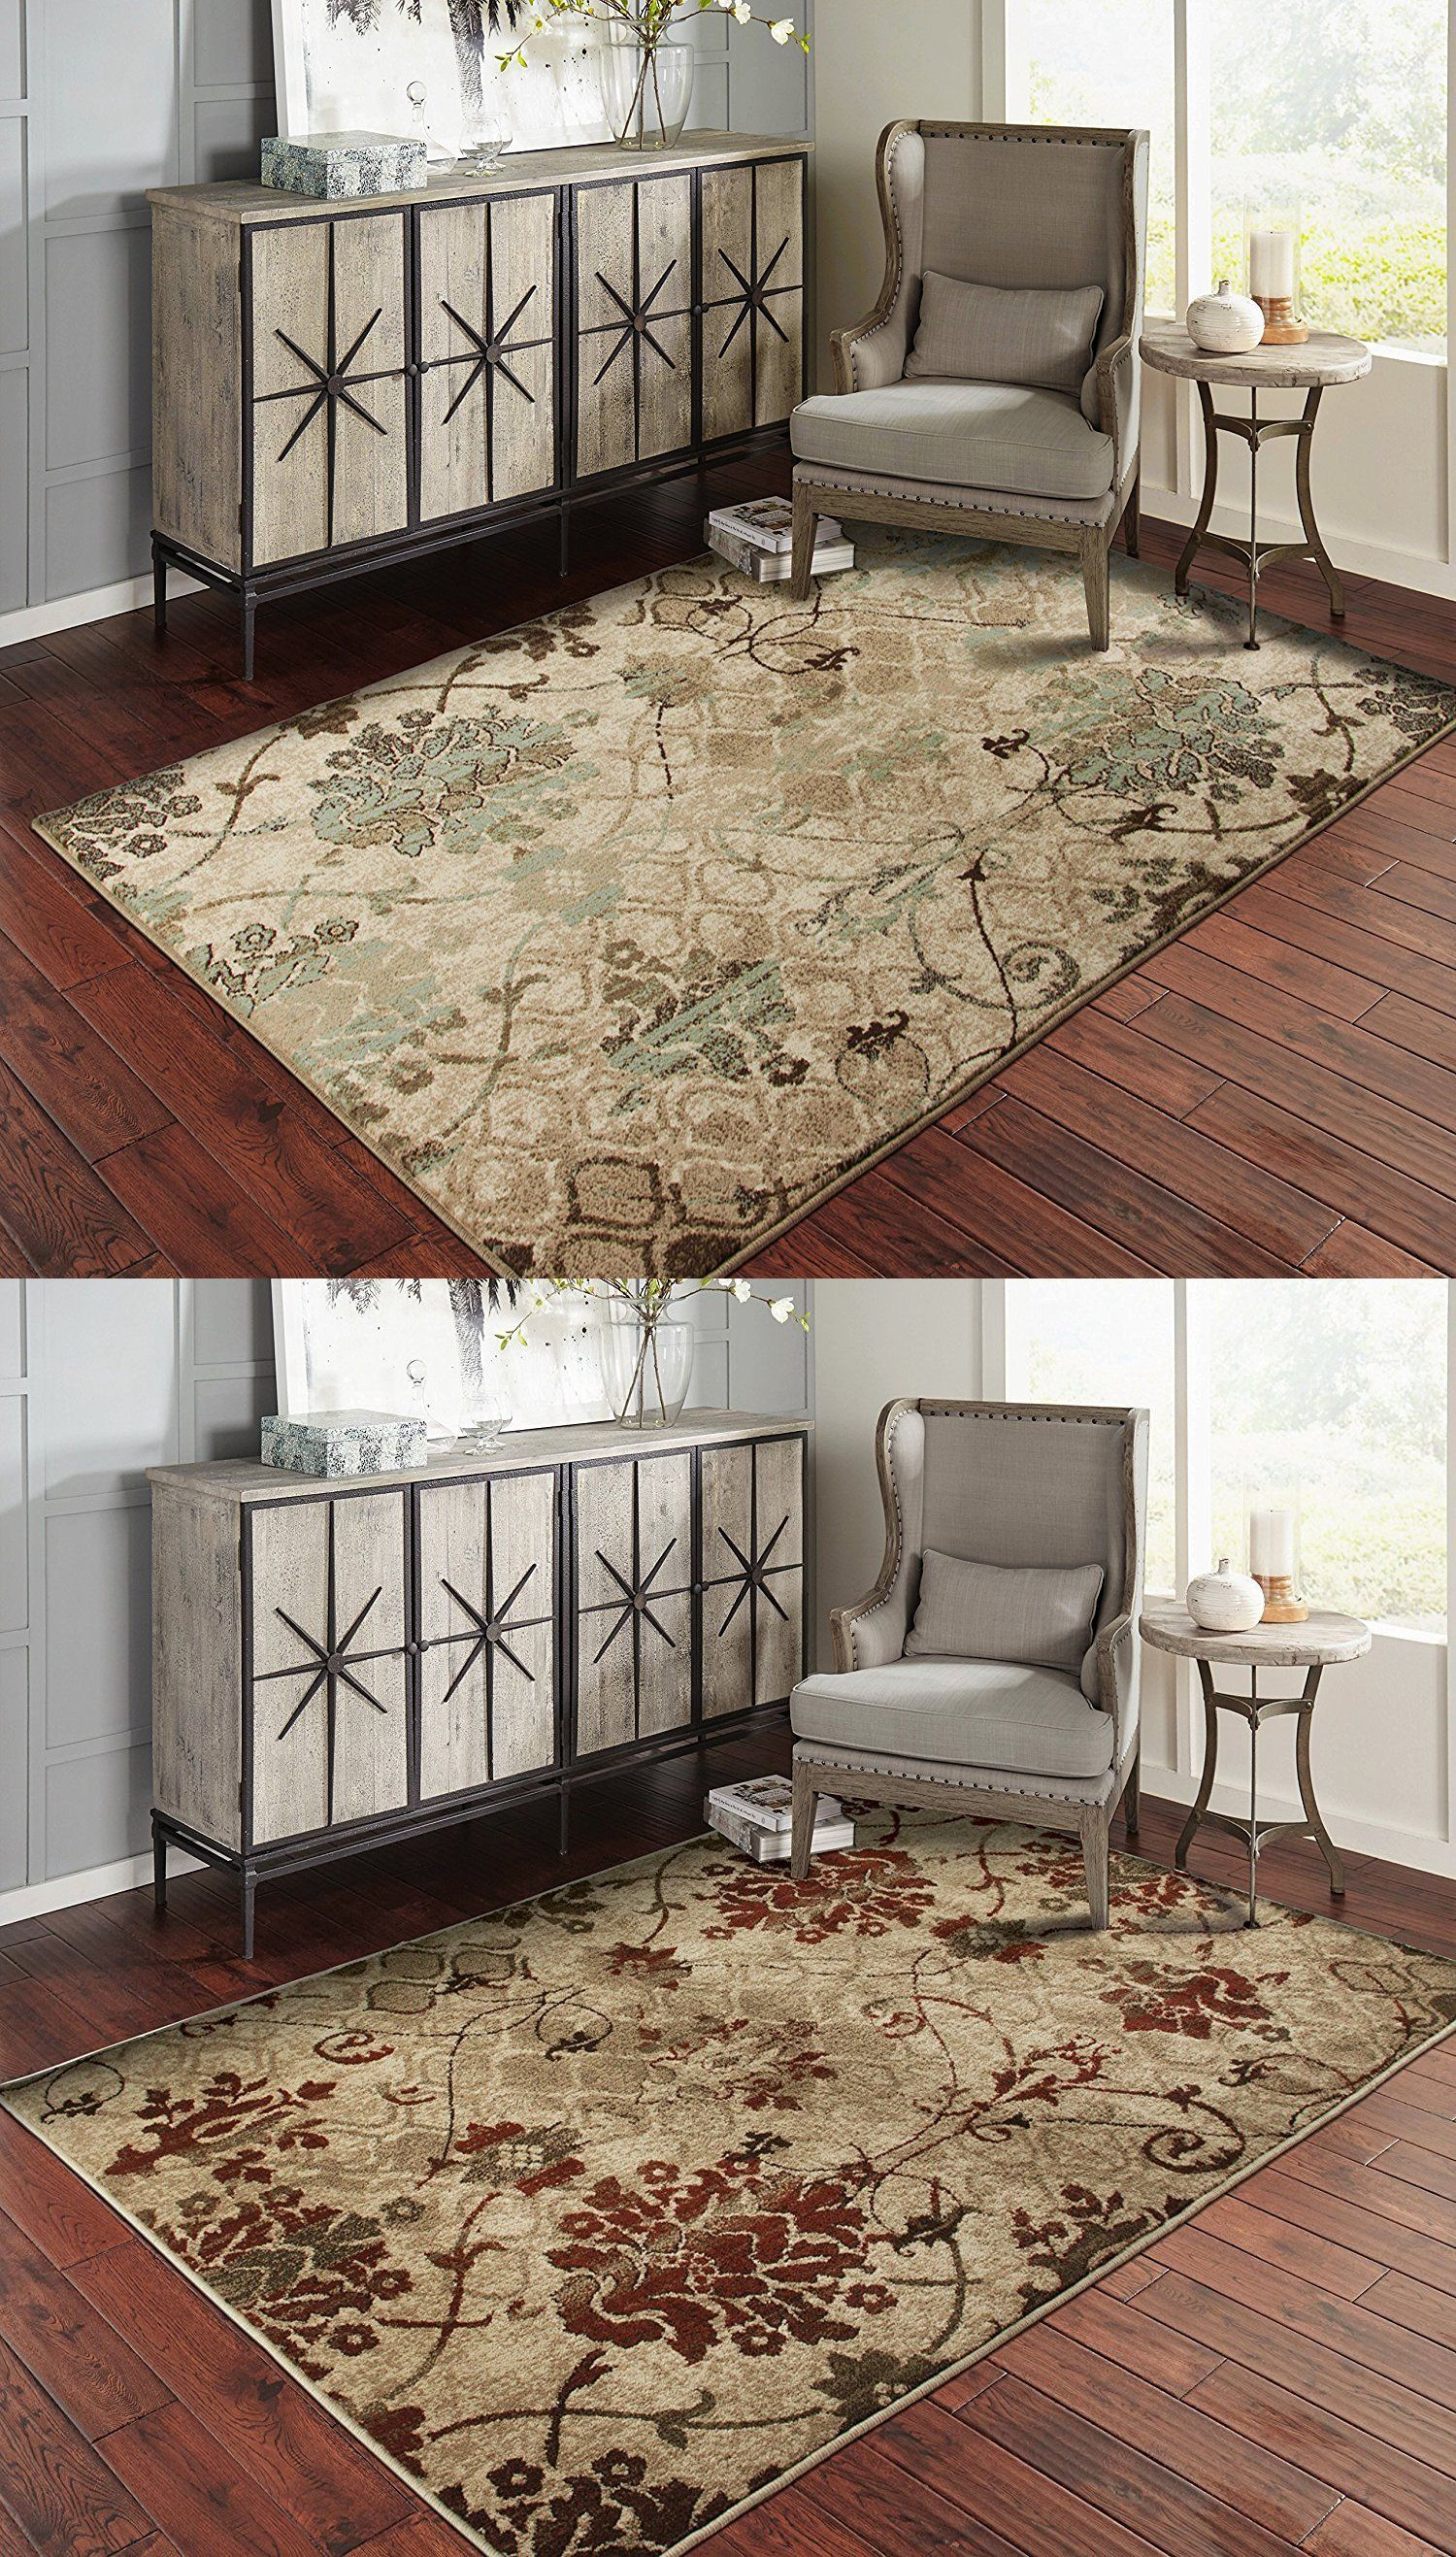 Area Rugs 45510 Modern Area Rugs For Living Room 8x10 Floral